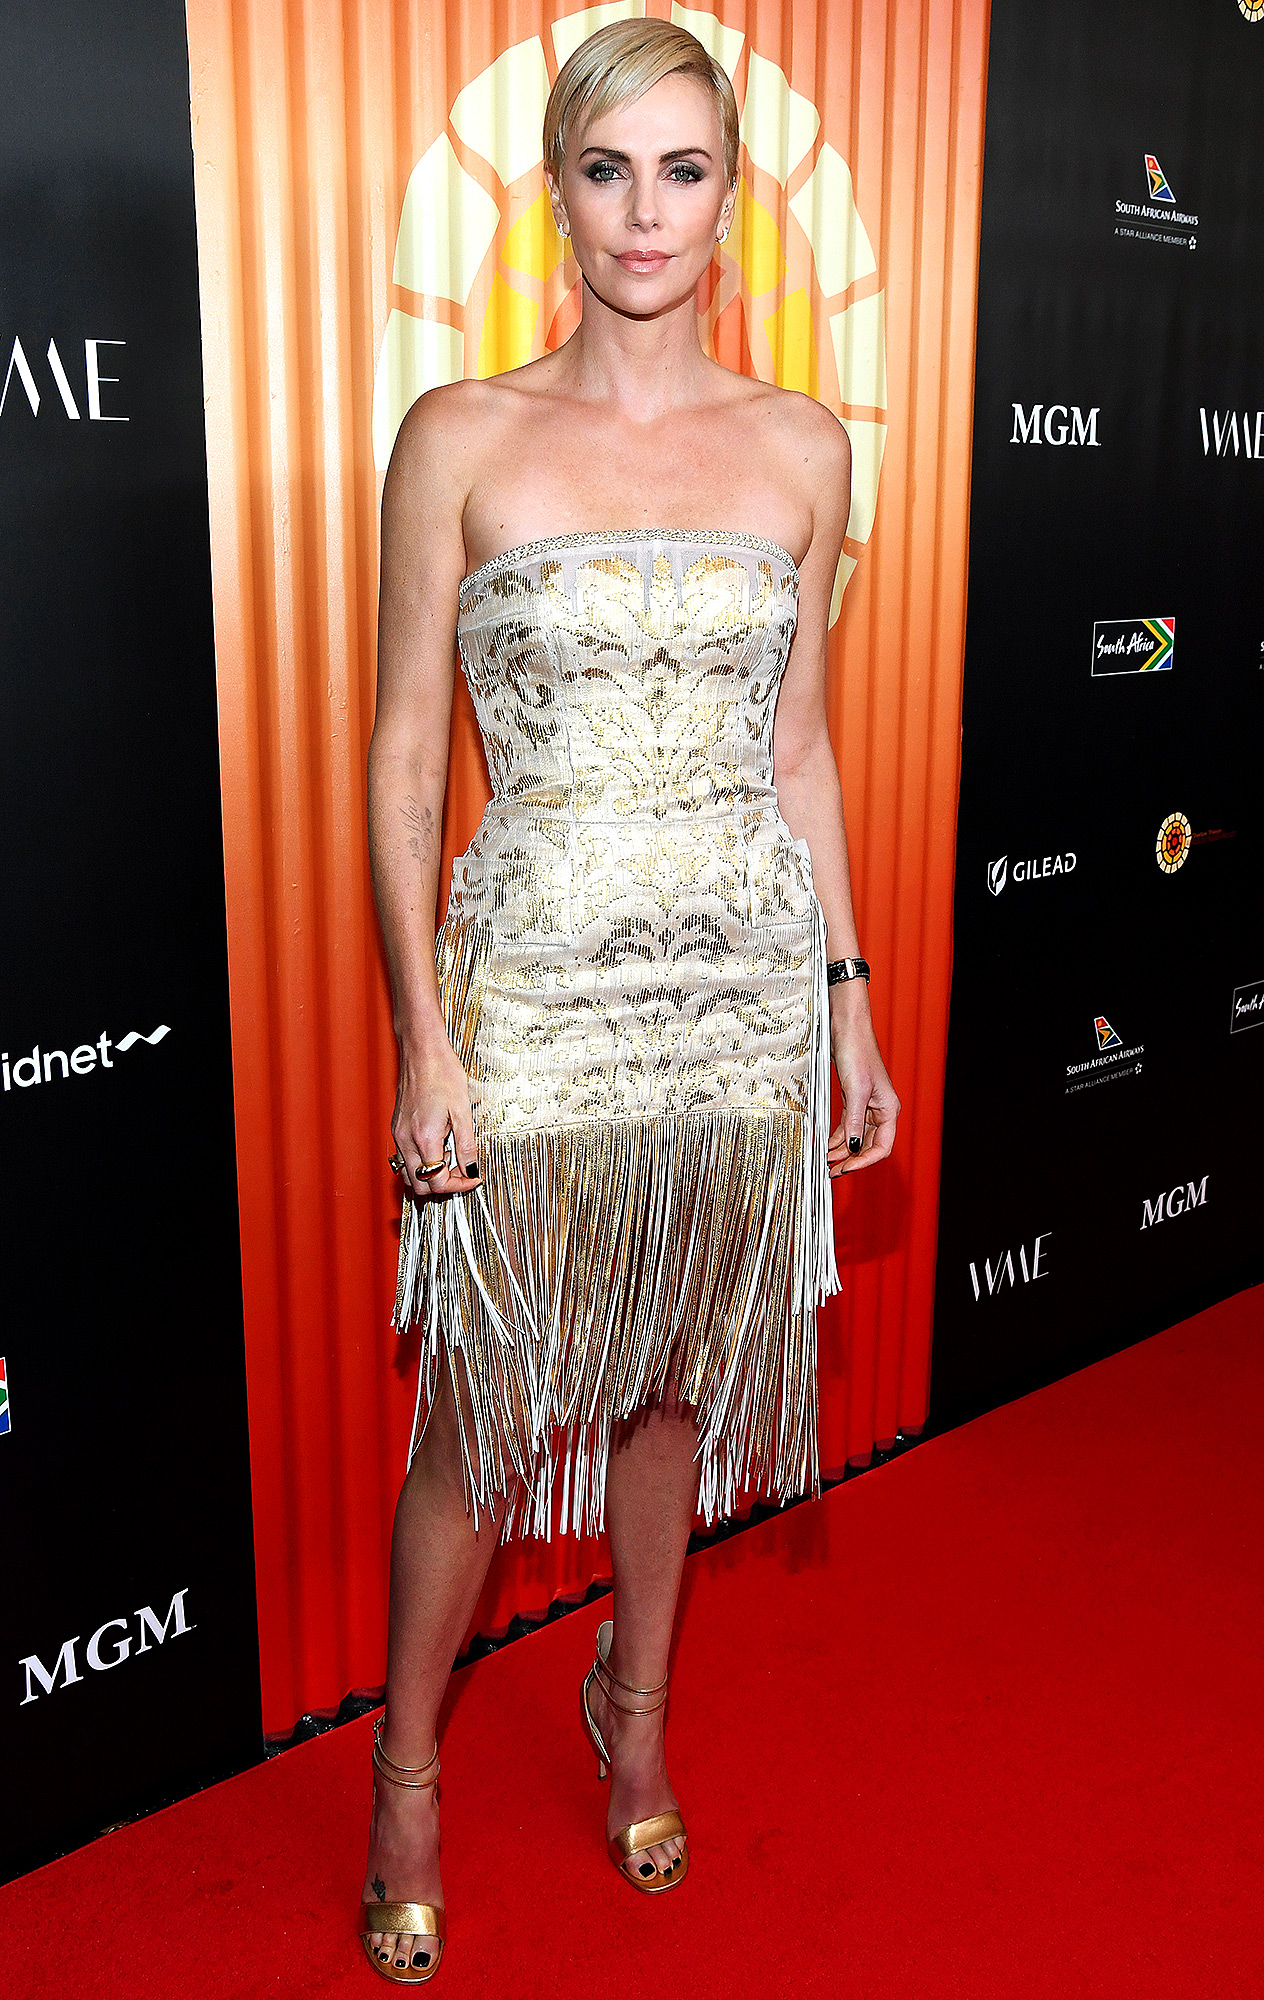 Charlize Theron attends The Charlize Theron Africa Outreach Project fundraising event